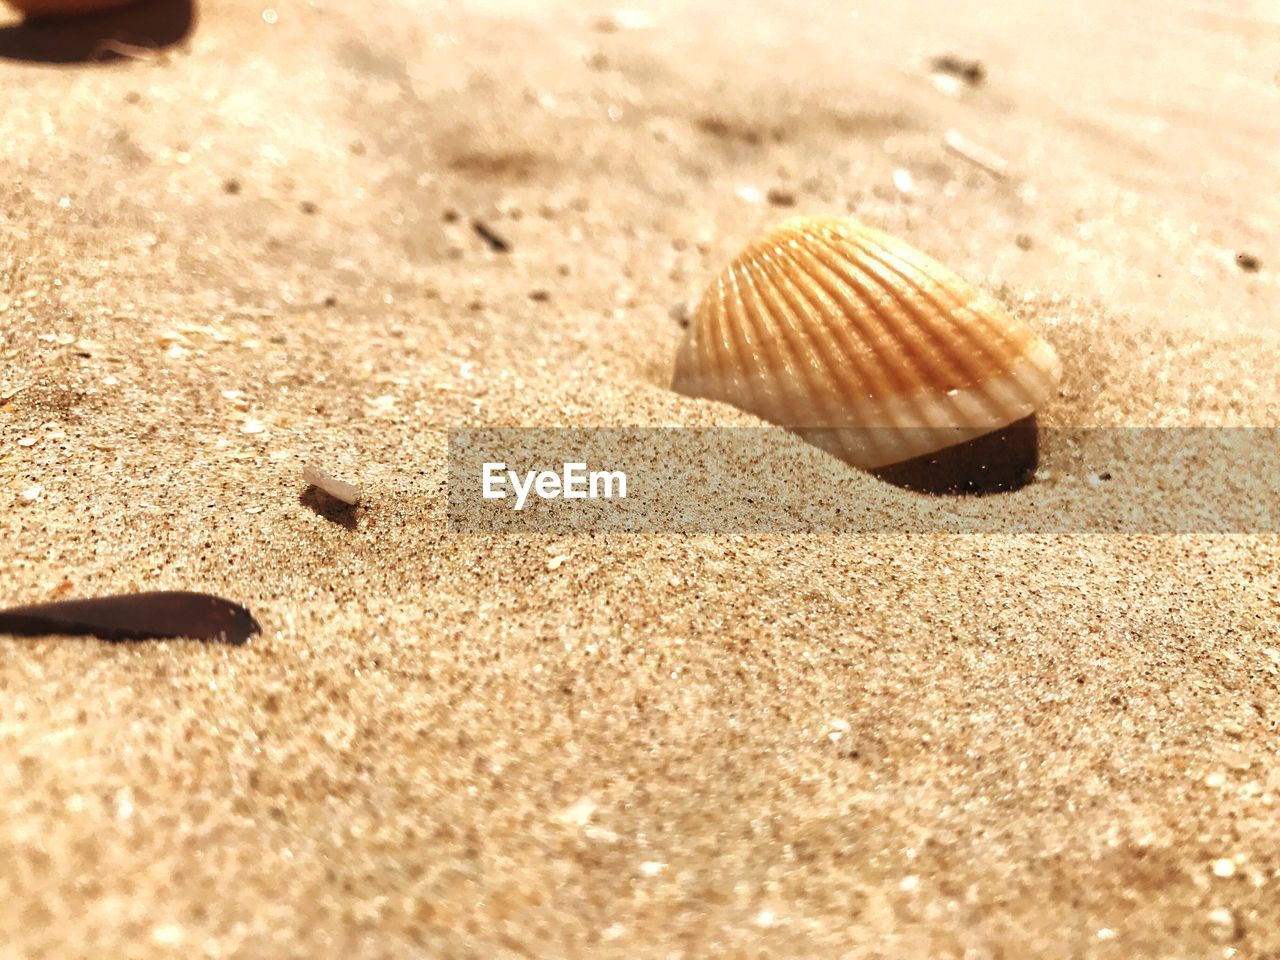 animal wildlife, shell, sand, animal, sunlight, animals in the wild, land, selective focus, day, close-up, beach, nature, animal shell, one animal, animal themes, no people, seashell, beauty in nature, natural pattern, pattern, outdoors, surface level, marine